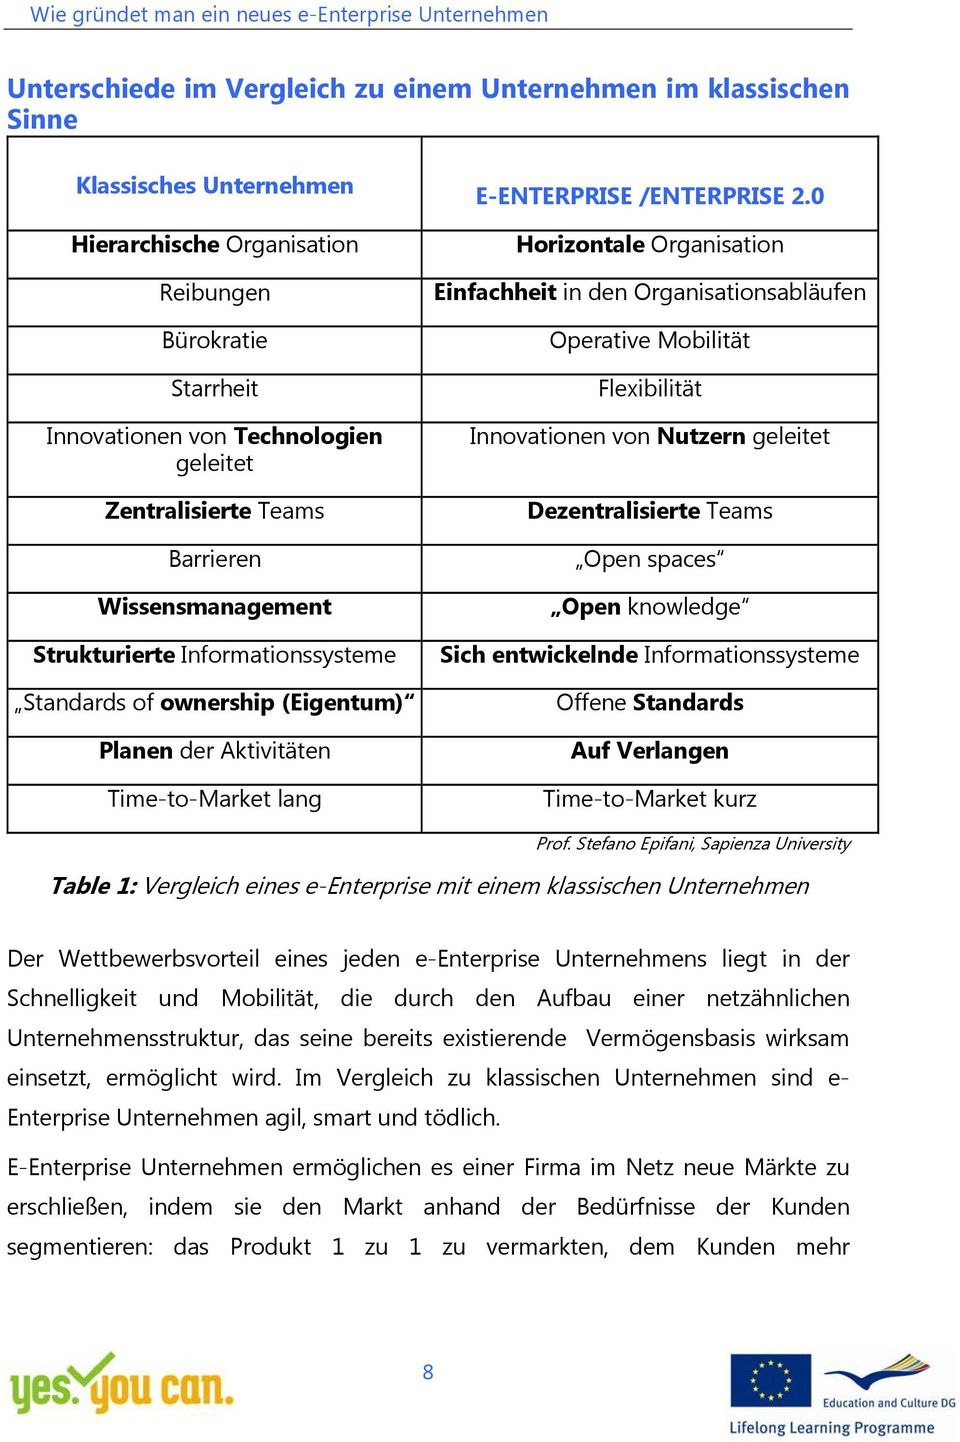 0 Horizontale Organisation Einfachheit in den Organisationsabläufen Operative Mobilität Flexibilität Innovationen von Nutzern geleitet Dezentralisierte Teams Open spaces Open knowledge Sich